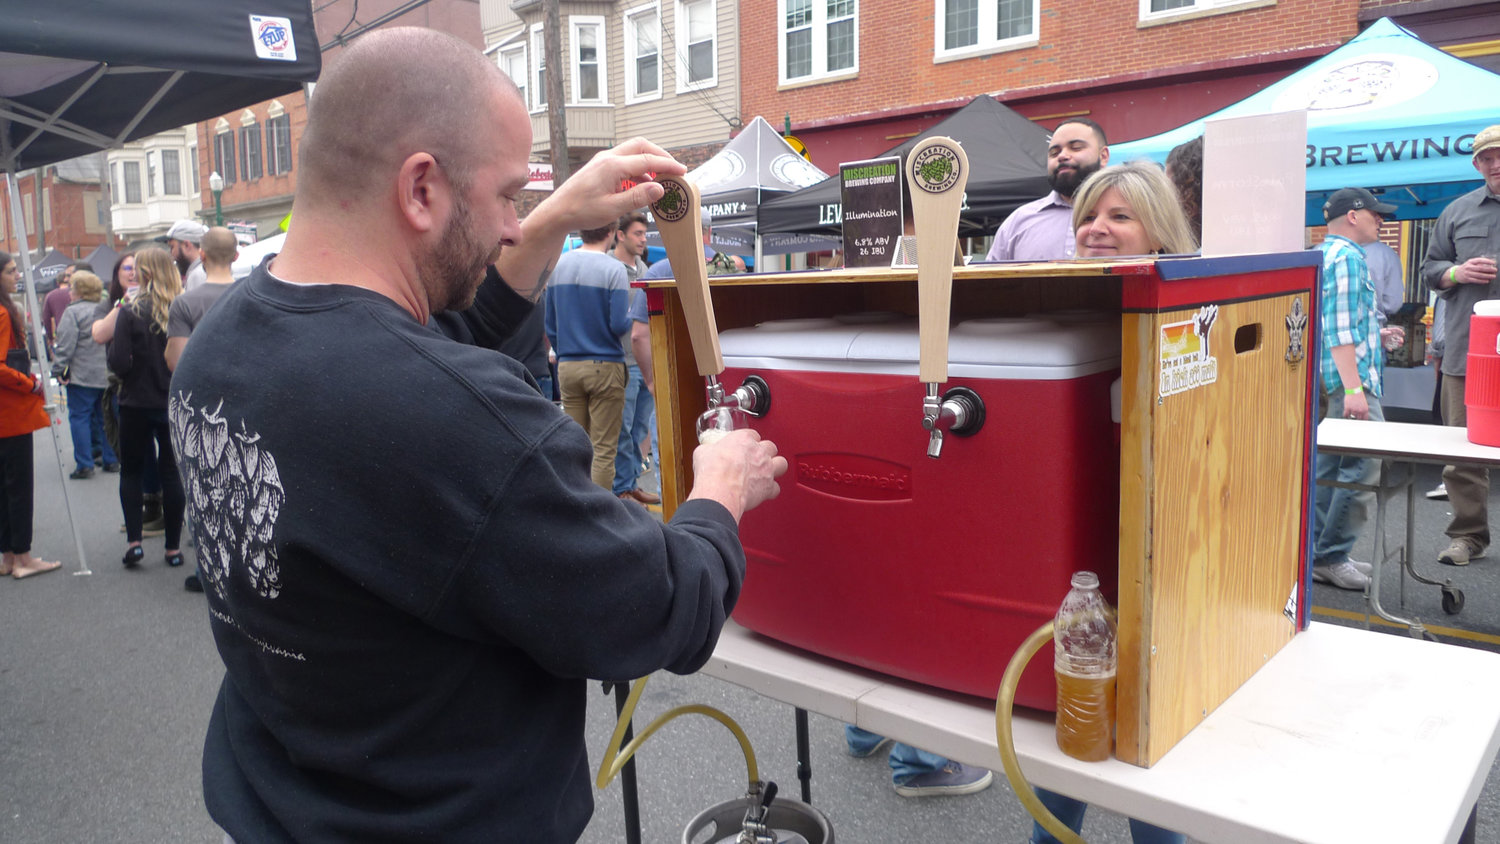 Brent Stambaugh, owner of Miscreation Brewing Company from Hanover, pours a cup of his Anatomically Speaking IPA to Jenny Gerber of Elizabethtown who is waiting to sample it during the Little Little Beer Festival held on South Union Street in Middletown on May 1.